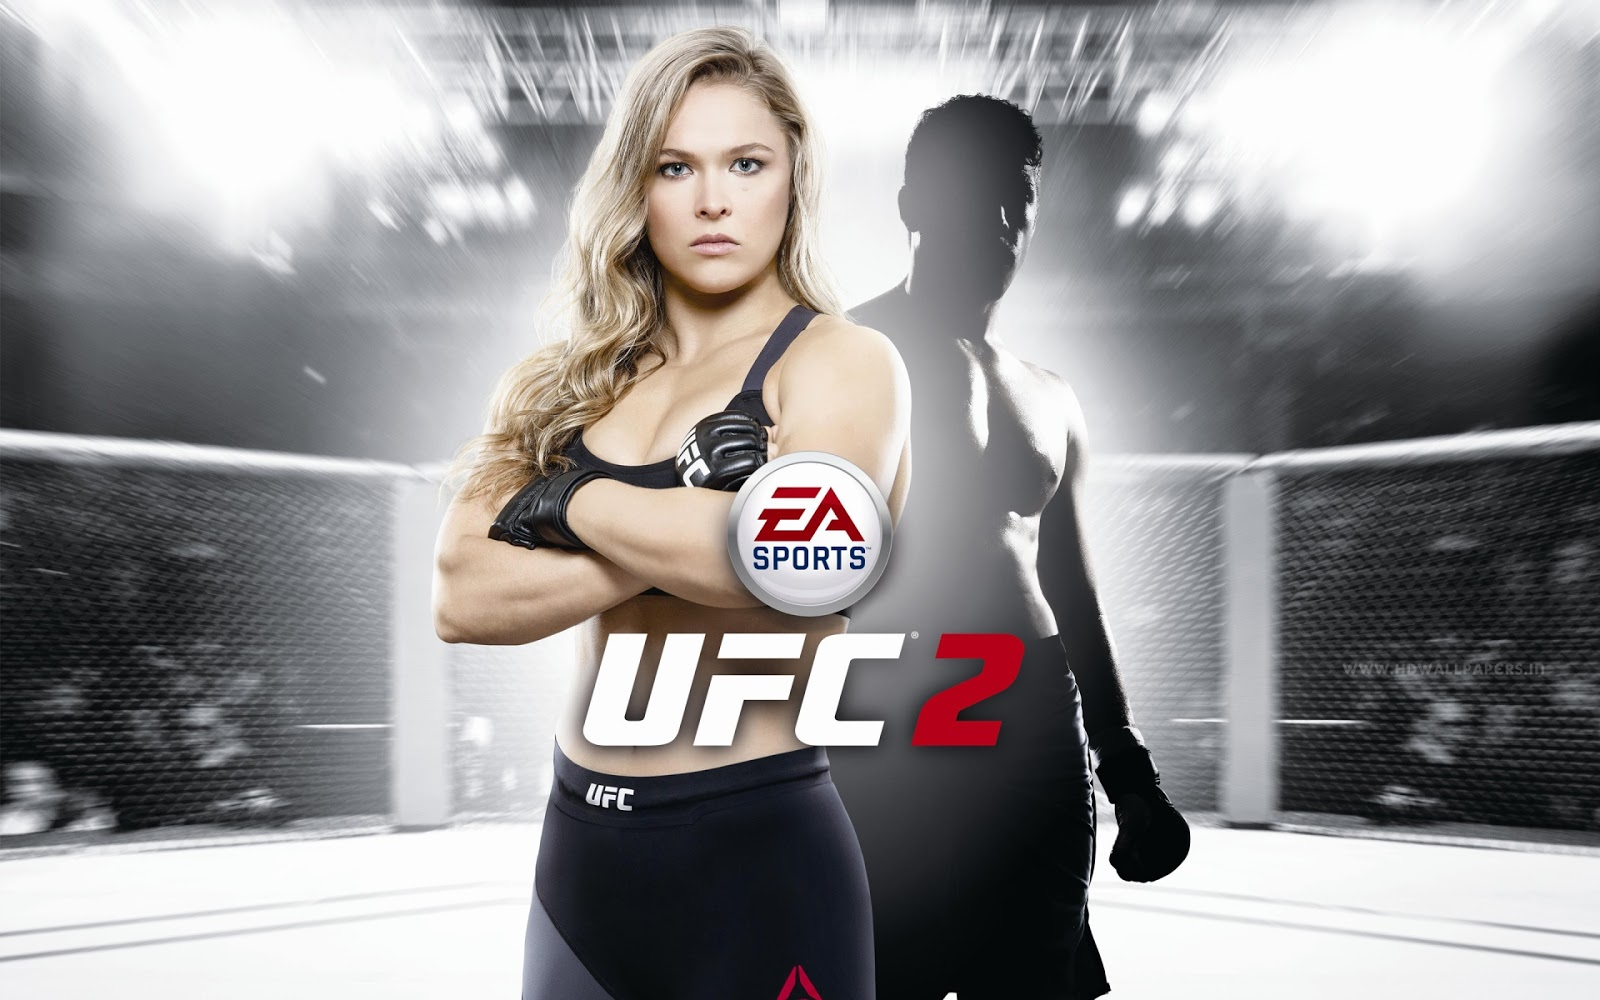 EA Sports UFC HD Wallpaper for Desktop